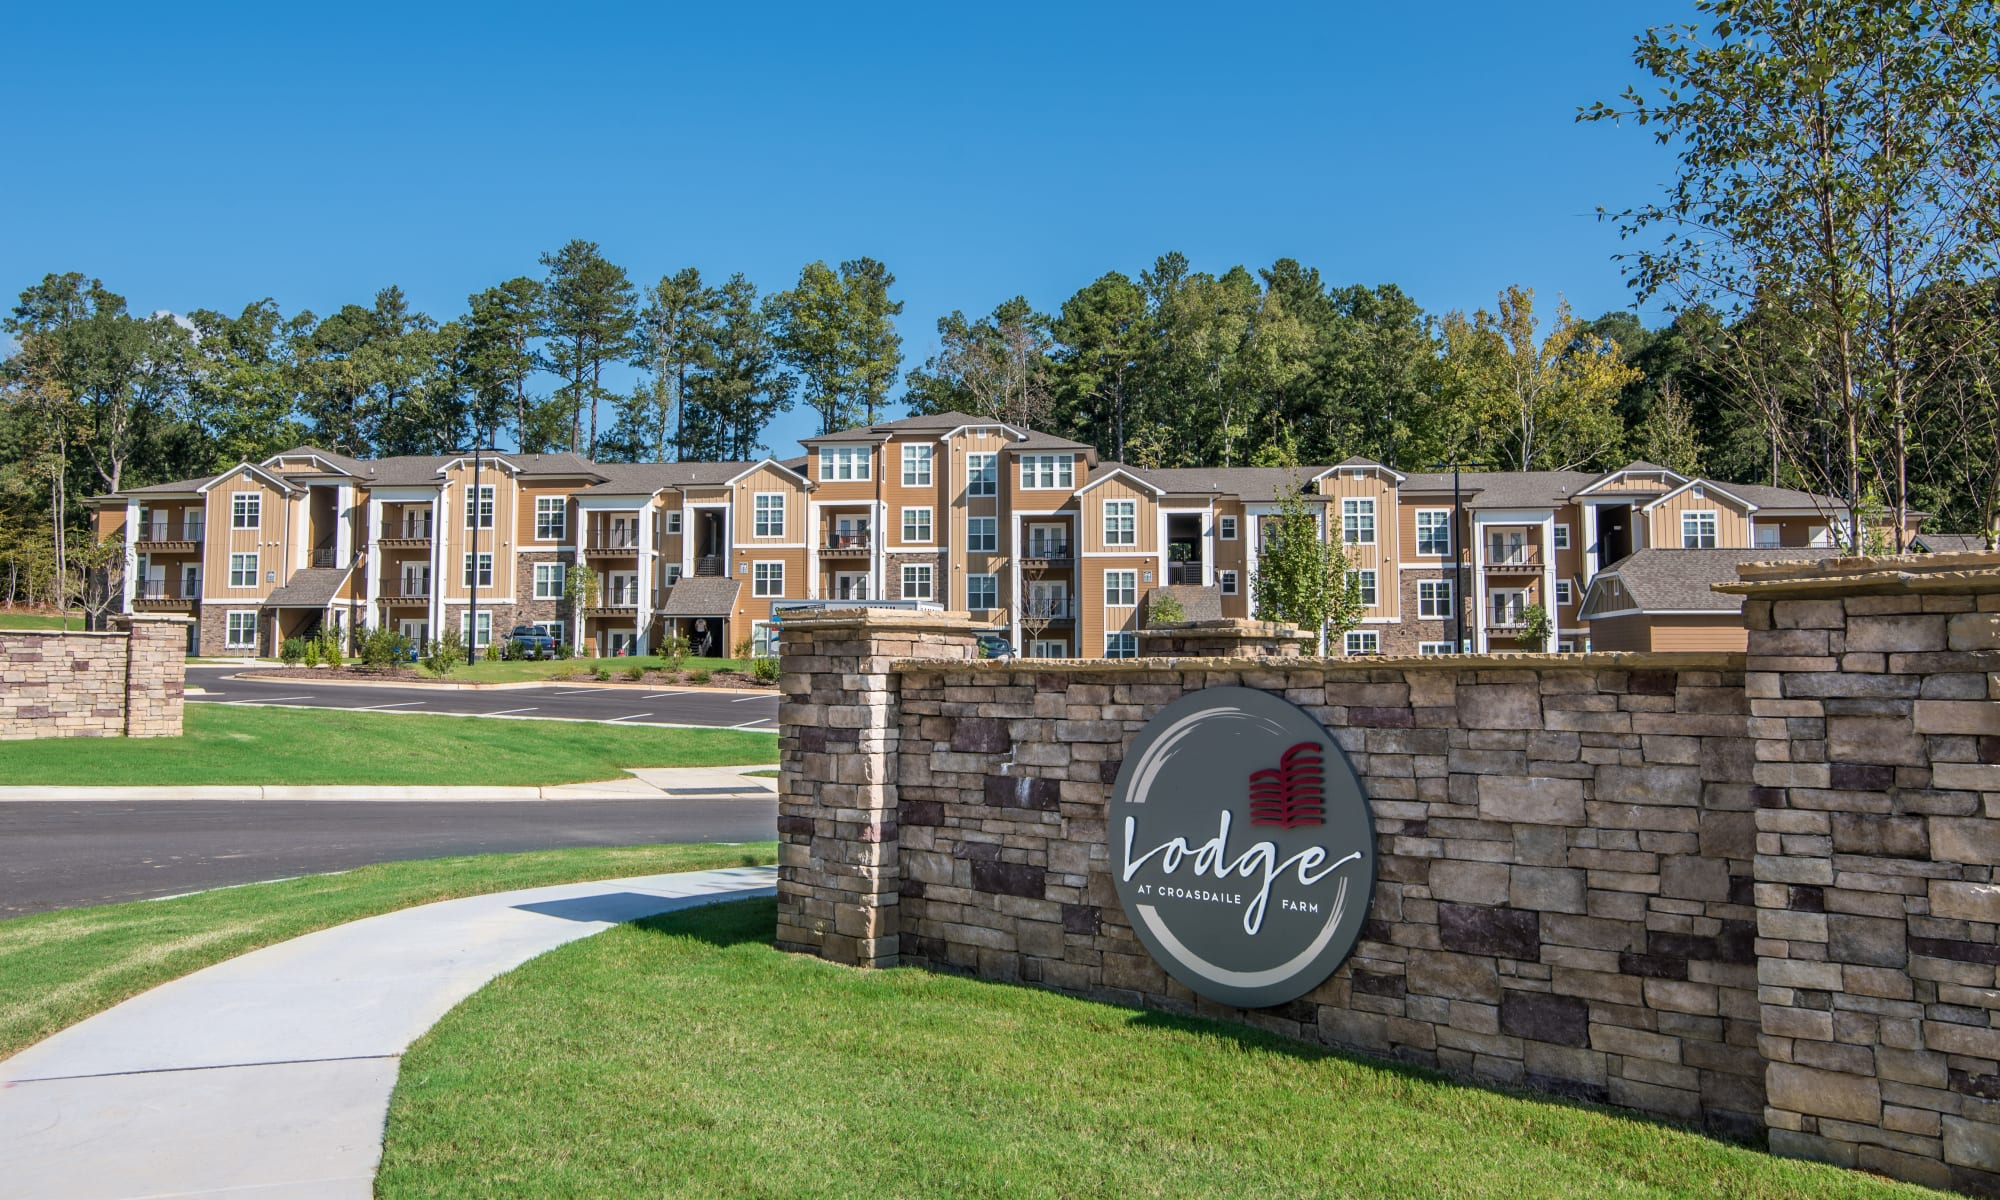 Apartments at Lodge at Croasdaile Farm in Durham, North Carolina